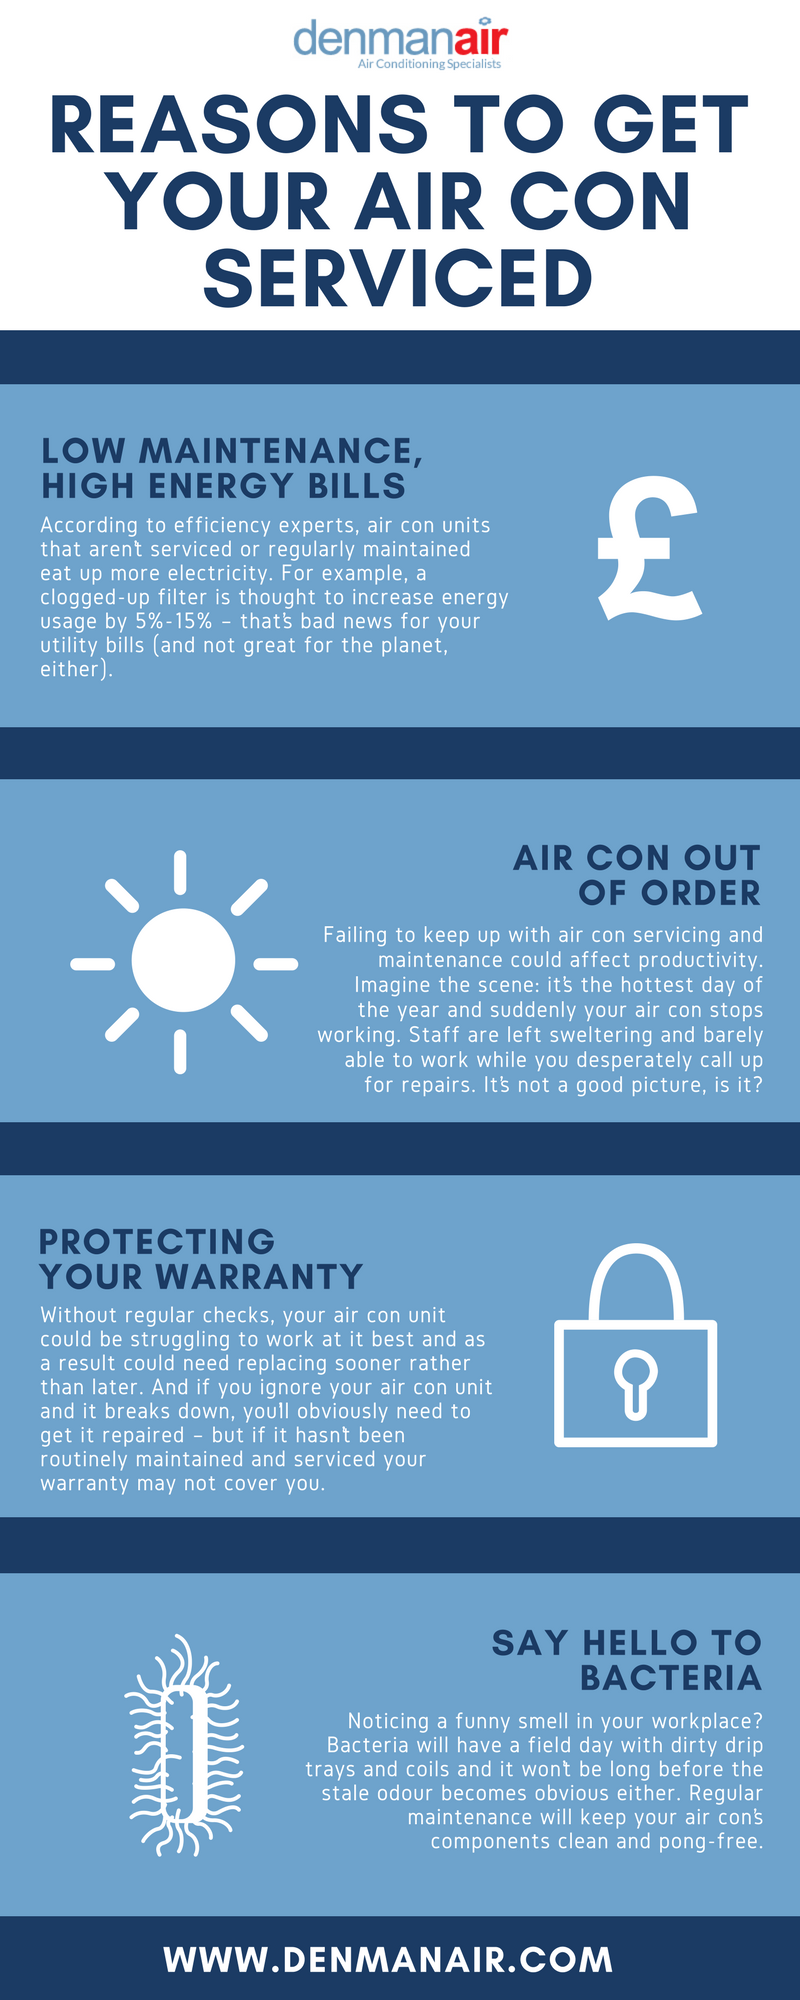 4 Reasons to Get your Air Con Serviced